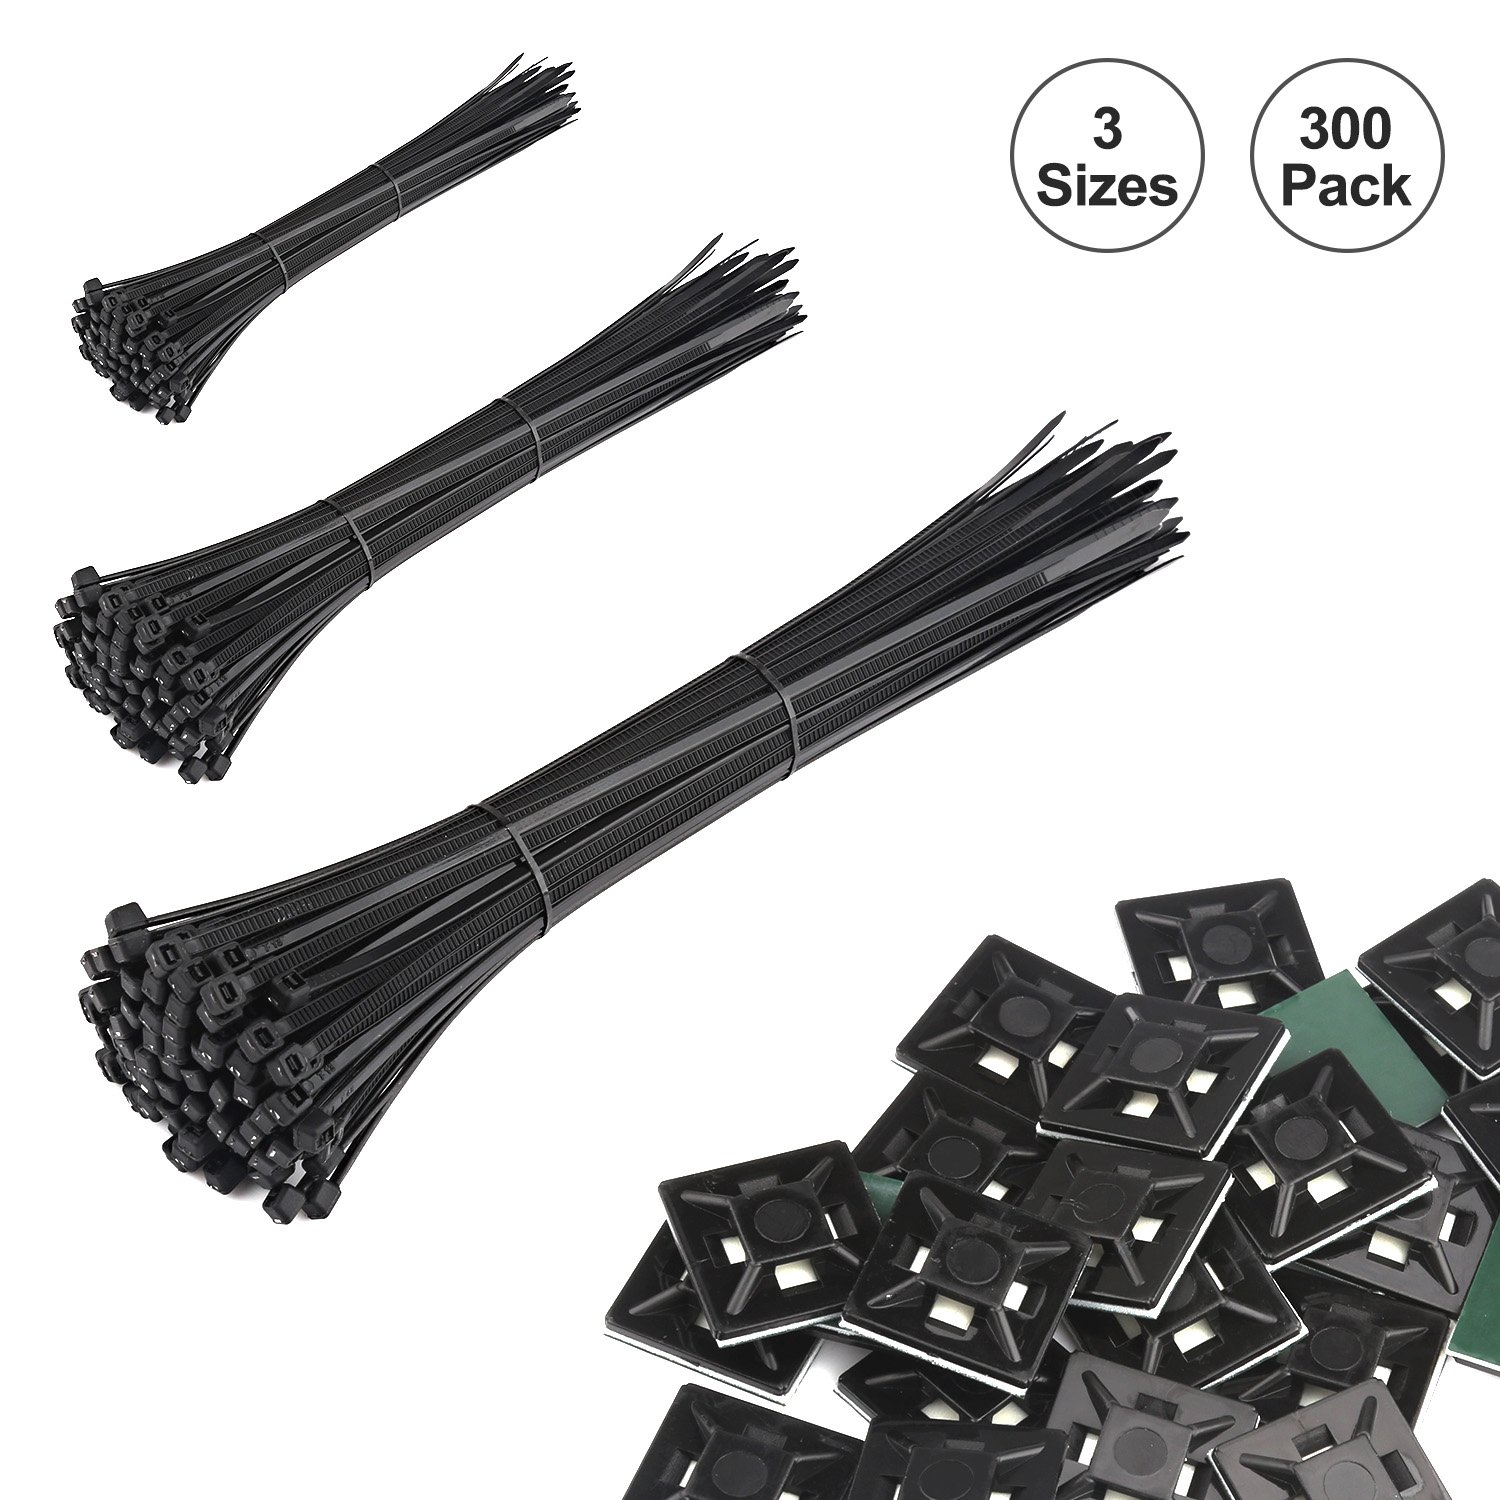 Cable Zip Ties,300 Pack 6+8+10-Inch Heavy Duty Self-Locking Nylon Cabel Ties with 50 Adhesive Backed Cable Mounts, Black Bransio ZD-01